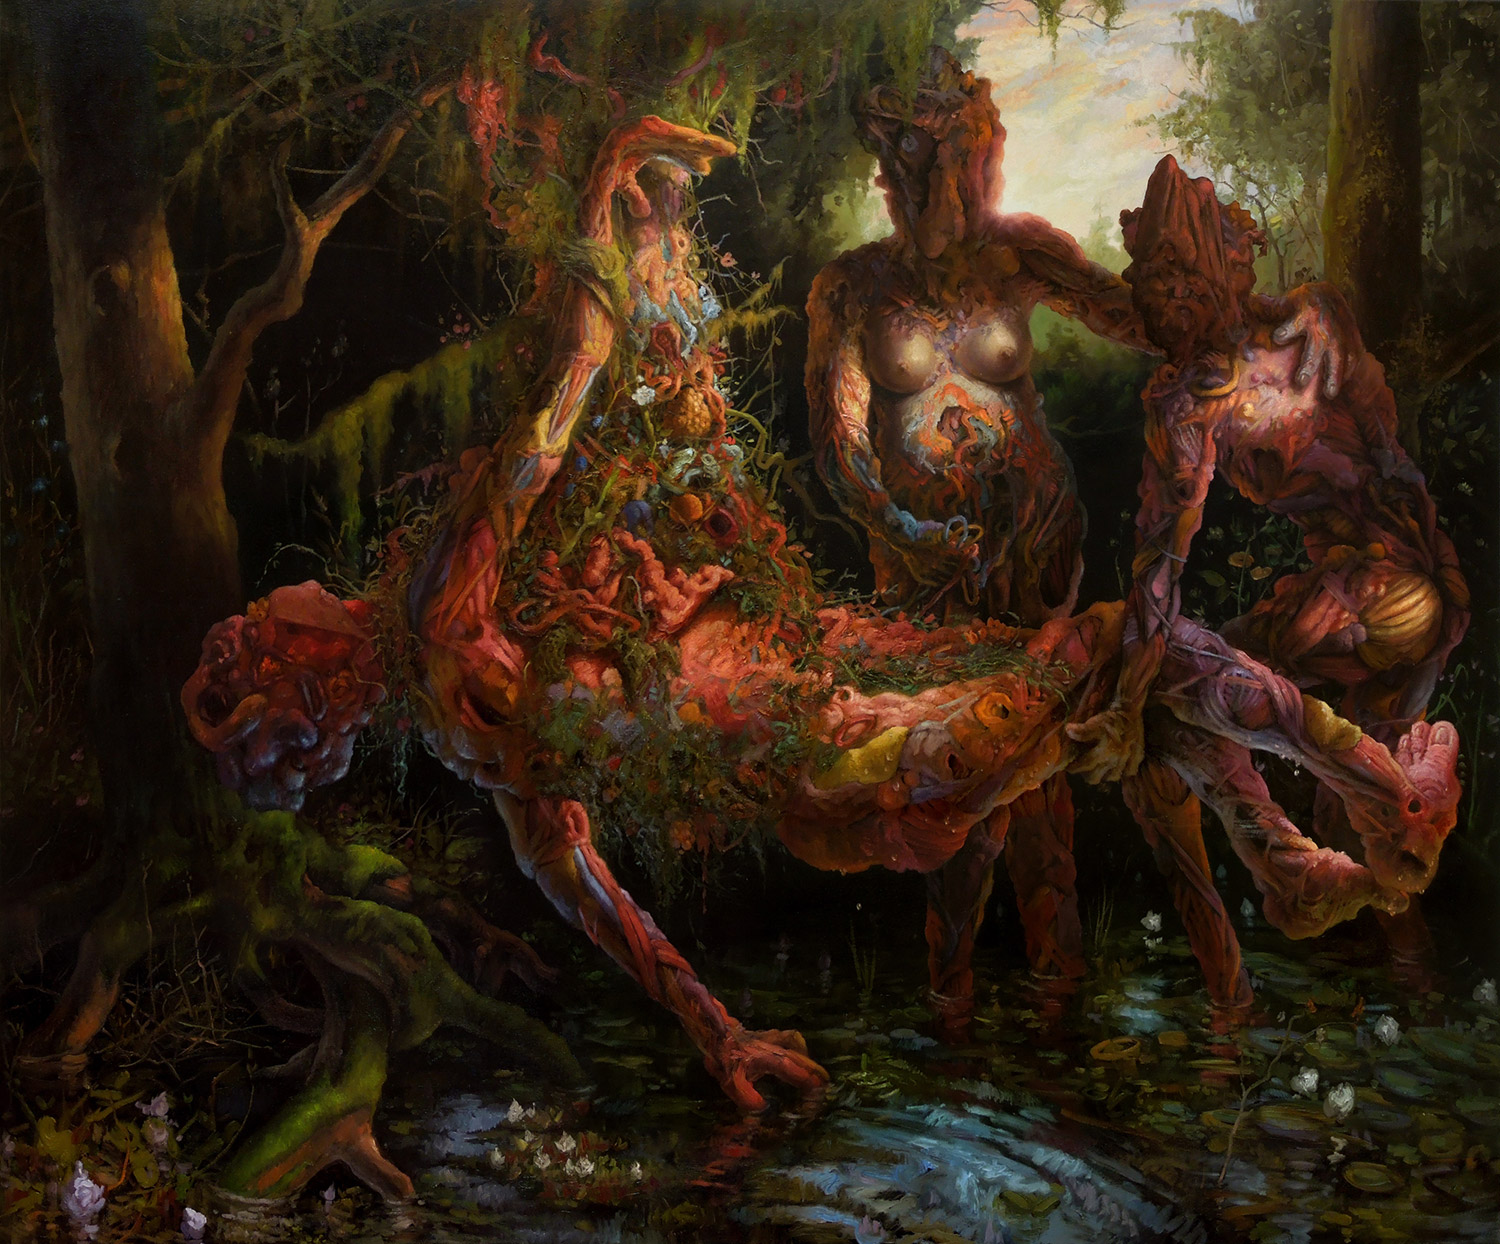 Adrian Cox, painting - Amniotic Paradise smaller size